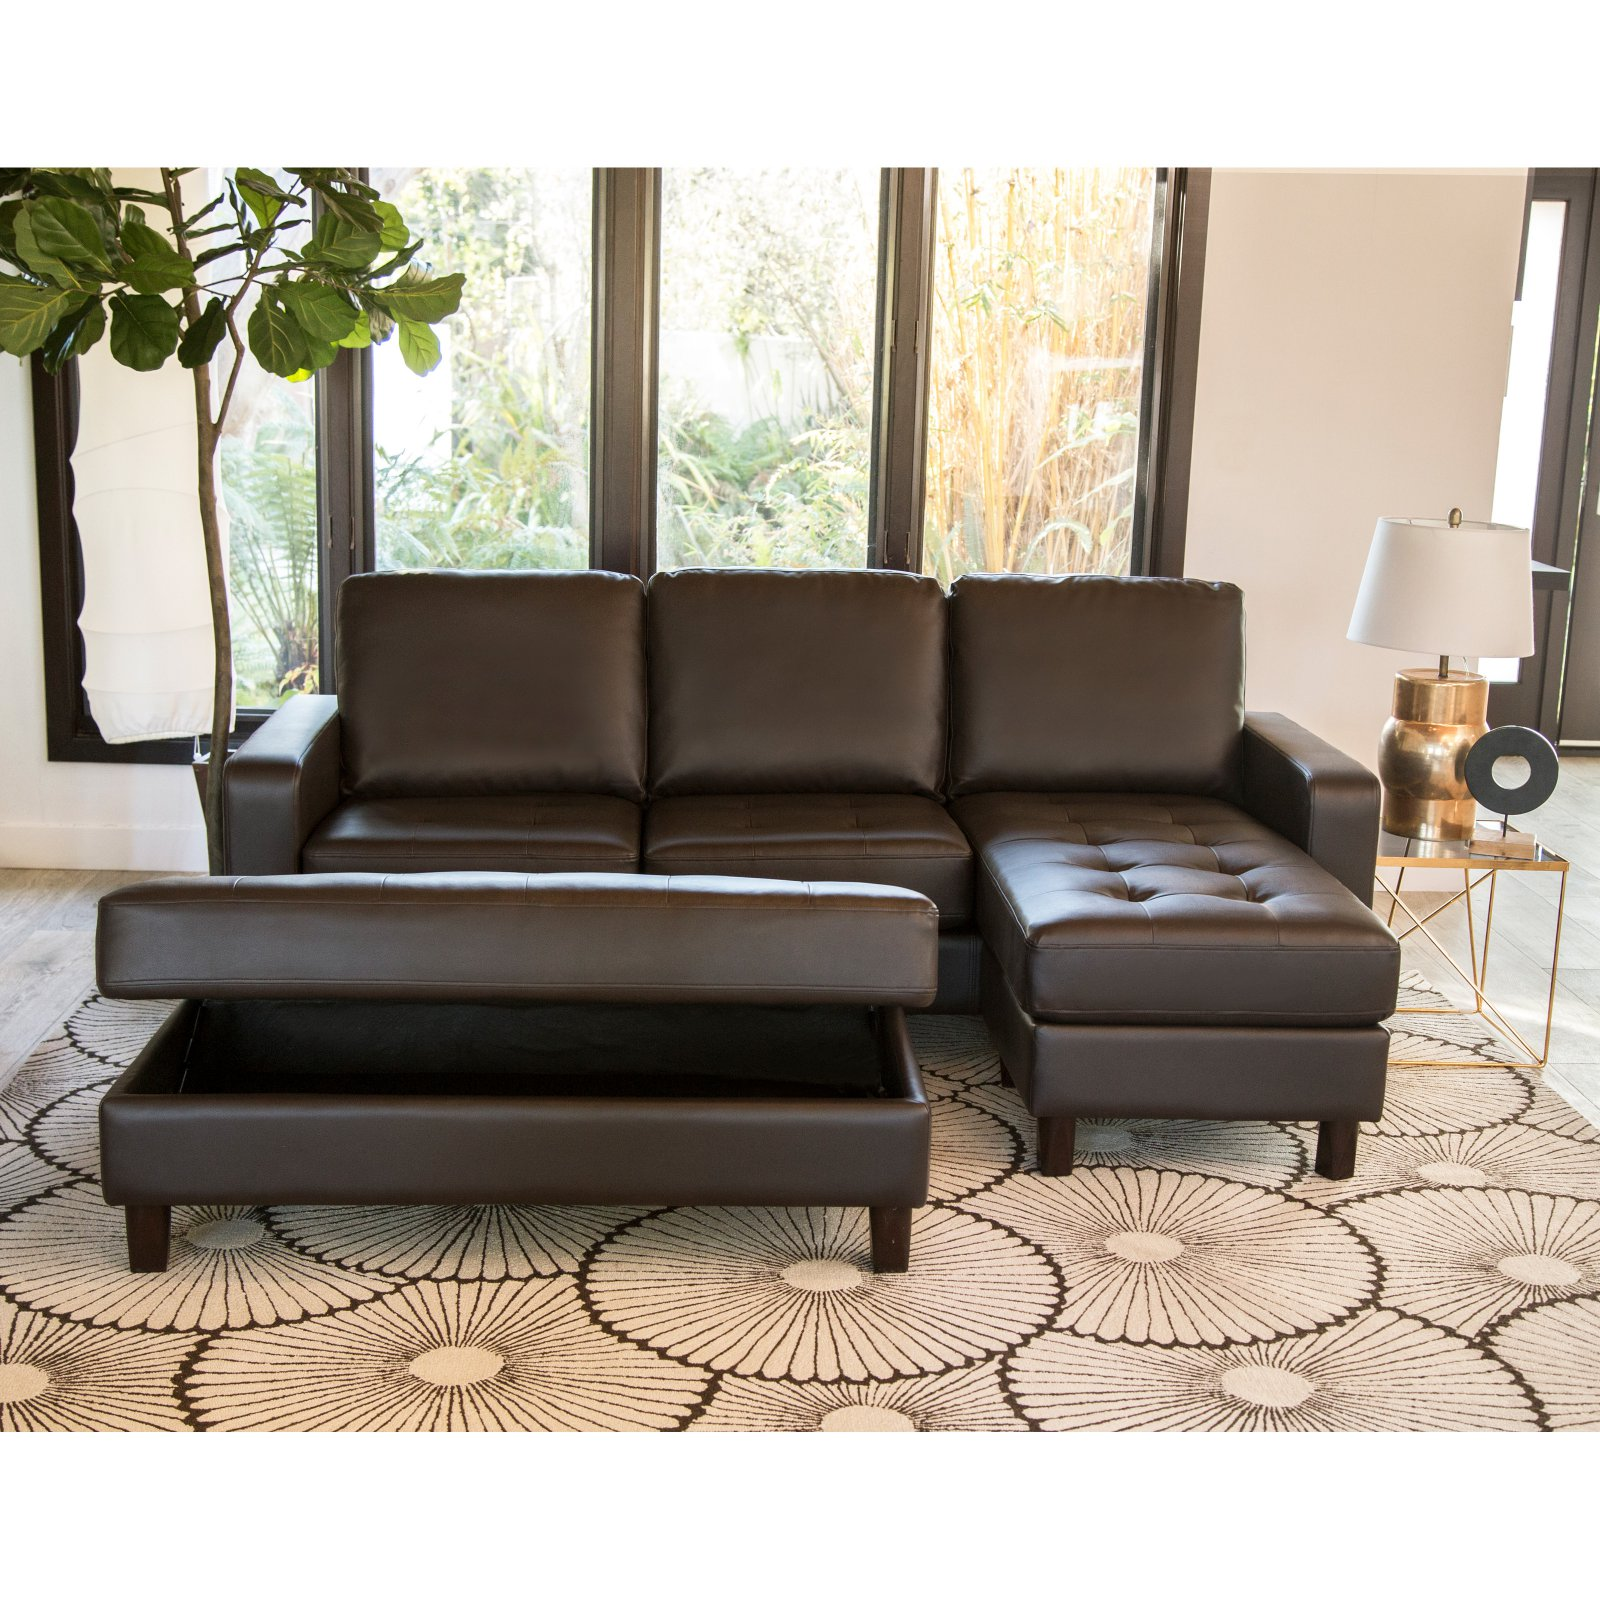 abbyson magnolia tufted leather reversible sectional sofa with ottoman